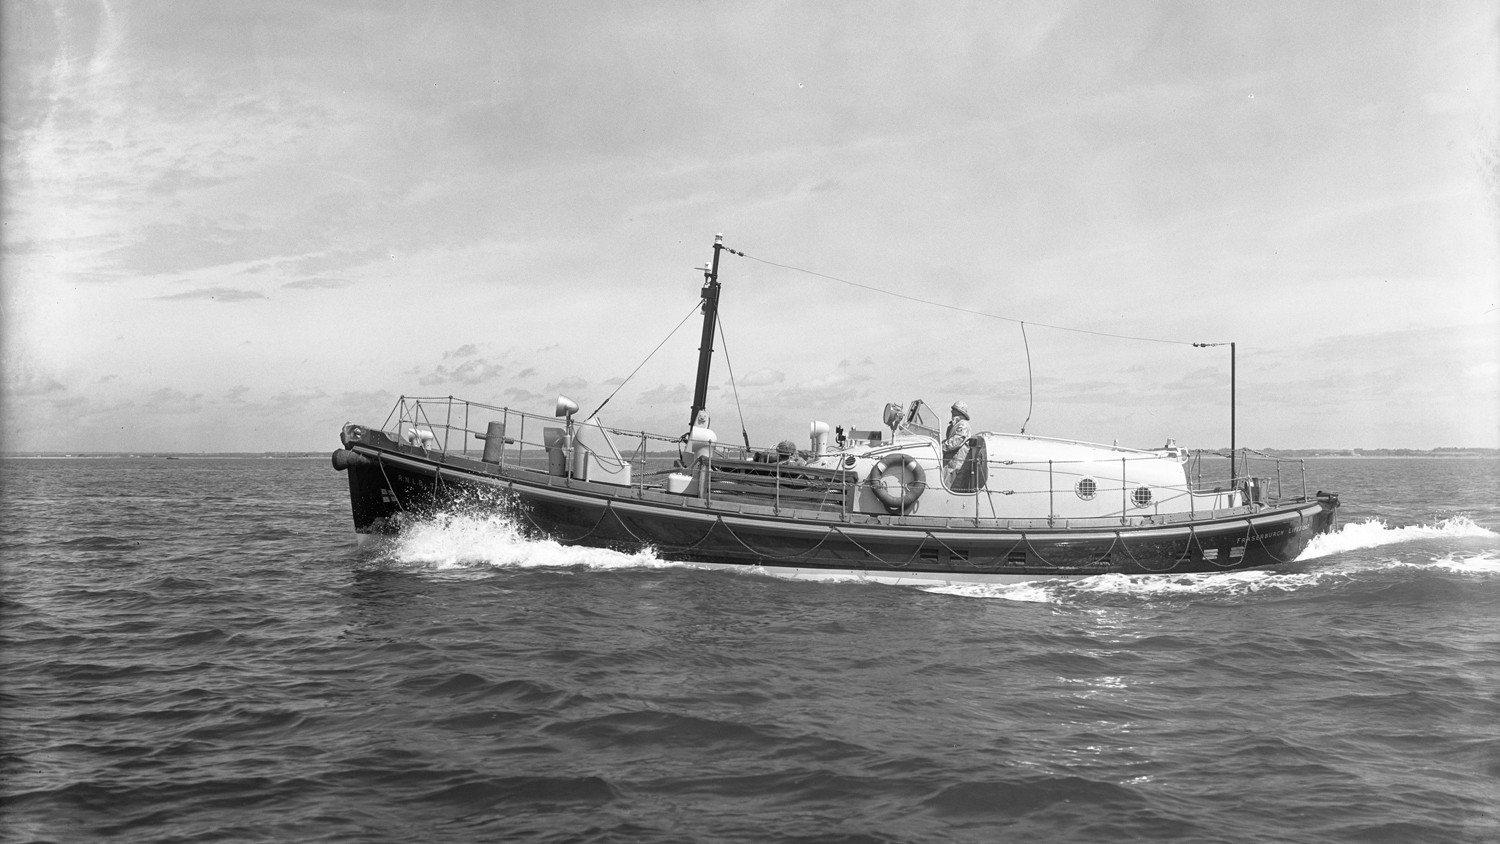 In calmer waters before the tragedy, the lifeboat Duchess of Kent